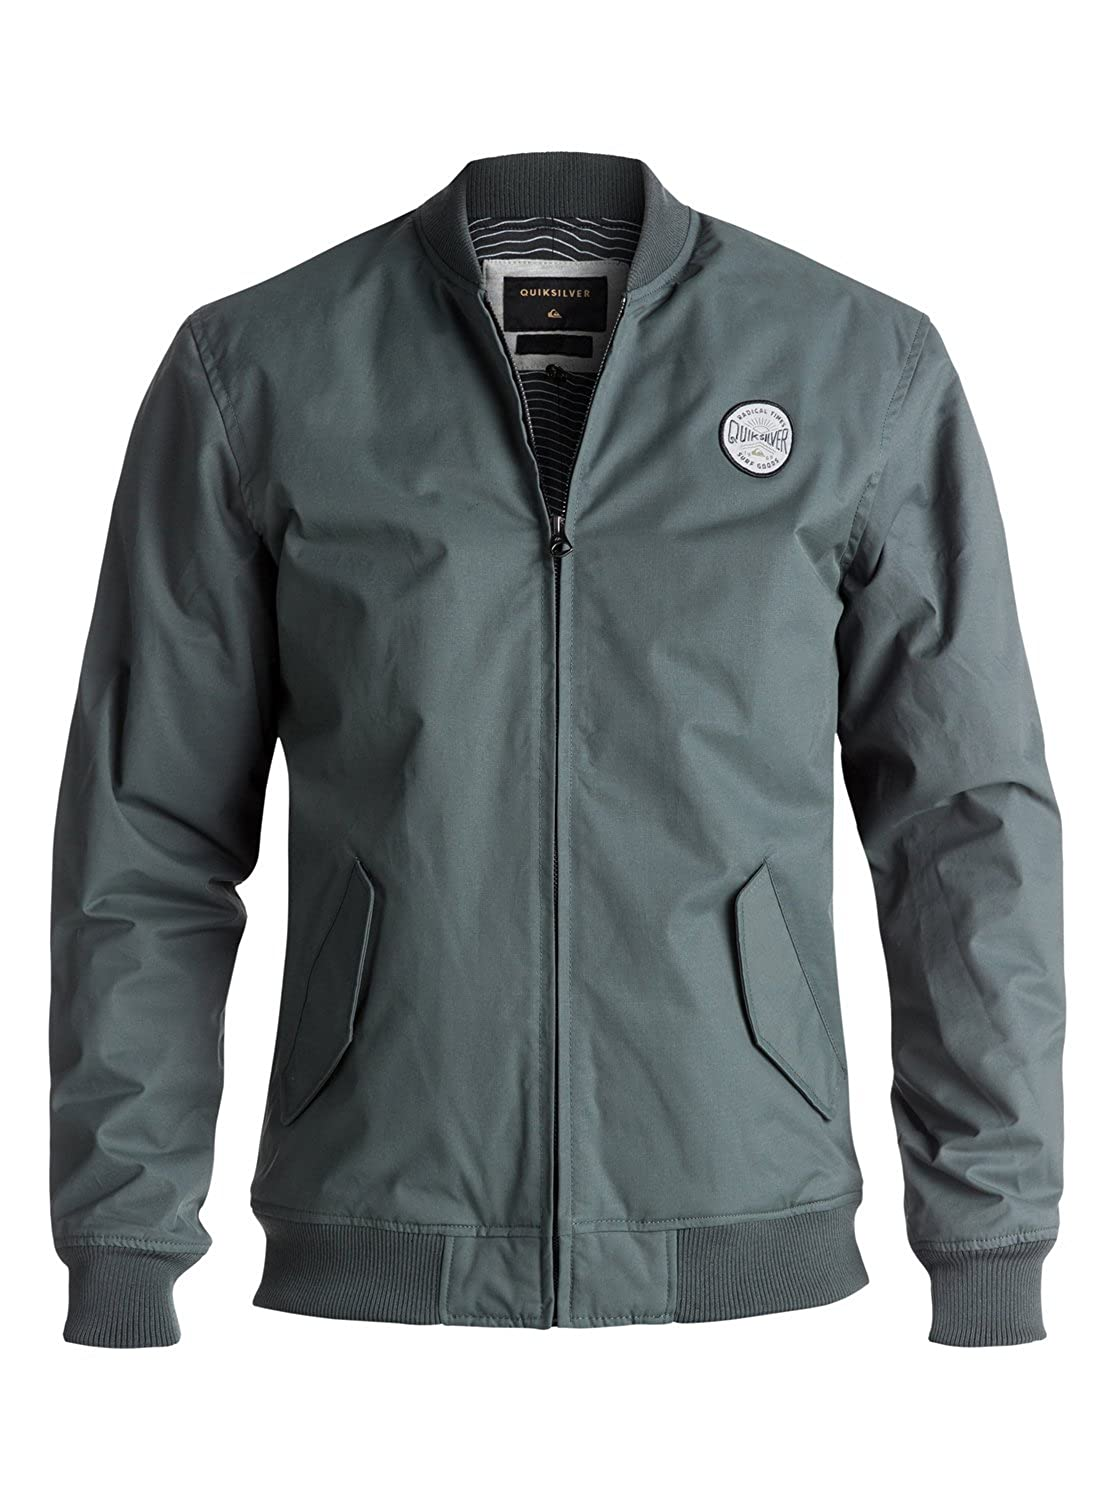 31084c9ce Quiksilver Waikawa - Water-Repellent Bomber Jacket for Men ...